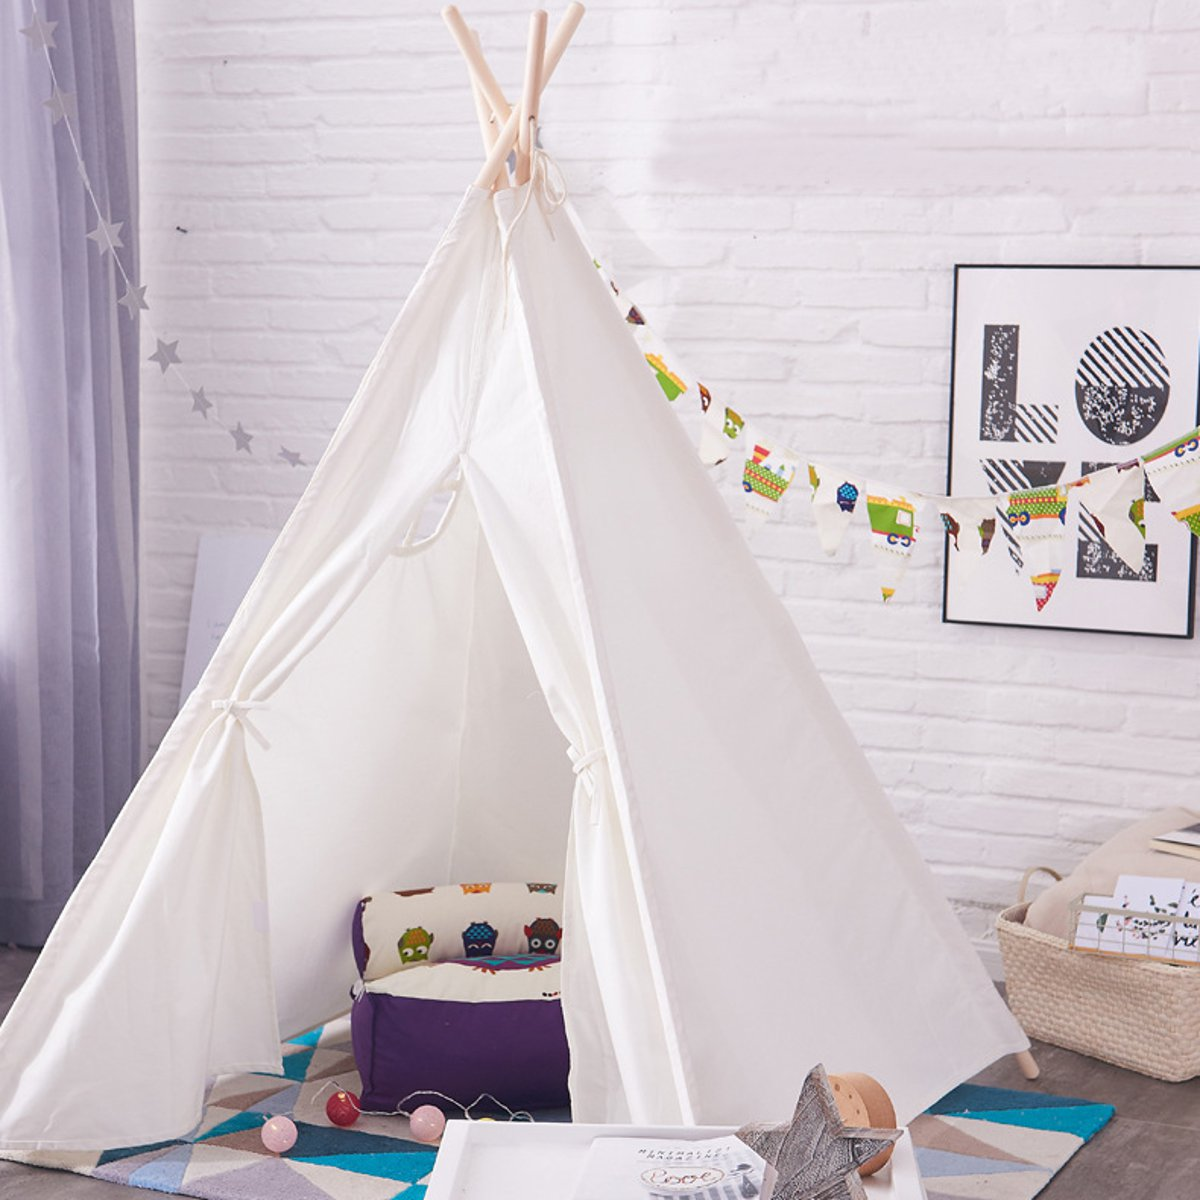 Tents For Kids Part - 39: Portable-Kids-Pet-Tents-Children-Home-Teepee-Sleeping-